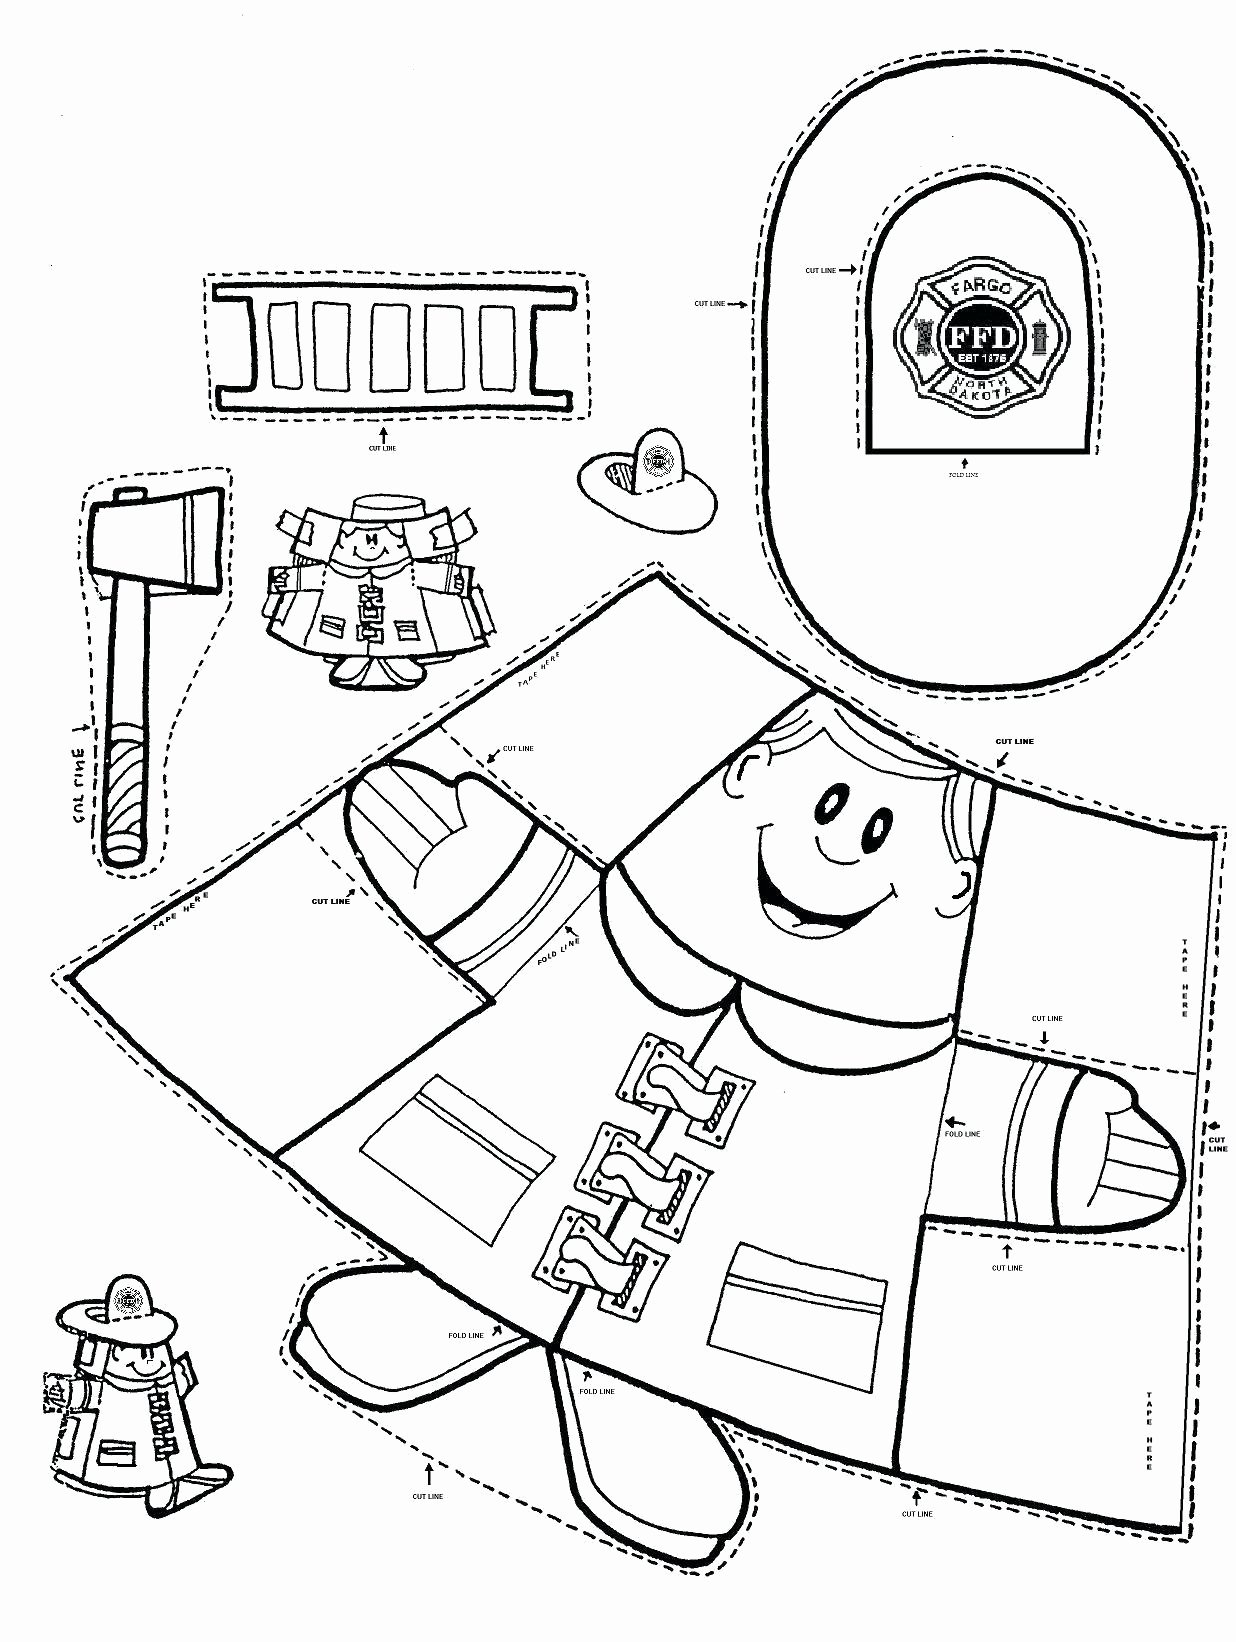 Fire Safety Worksheets for Preschoolers Best Of Coloring Fire Safety Coloringges Free Printable Preschool